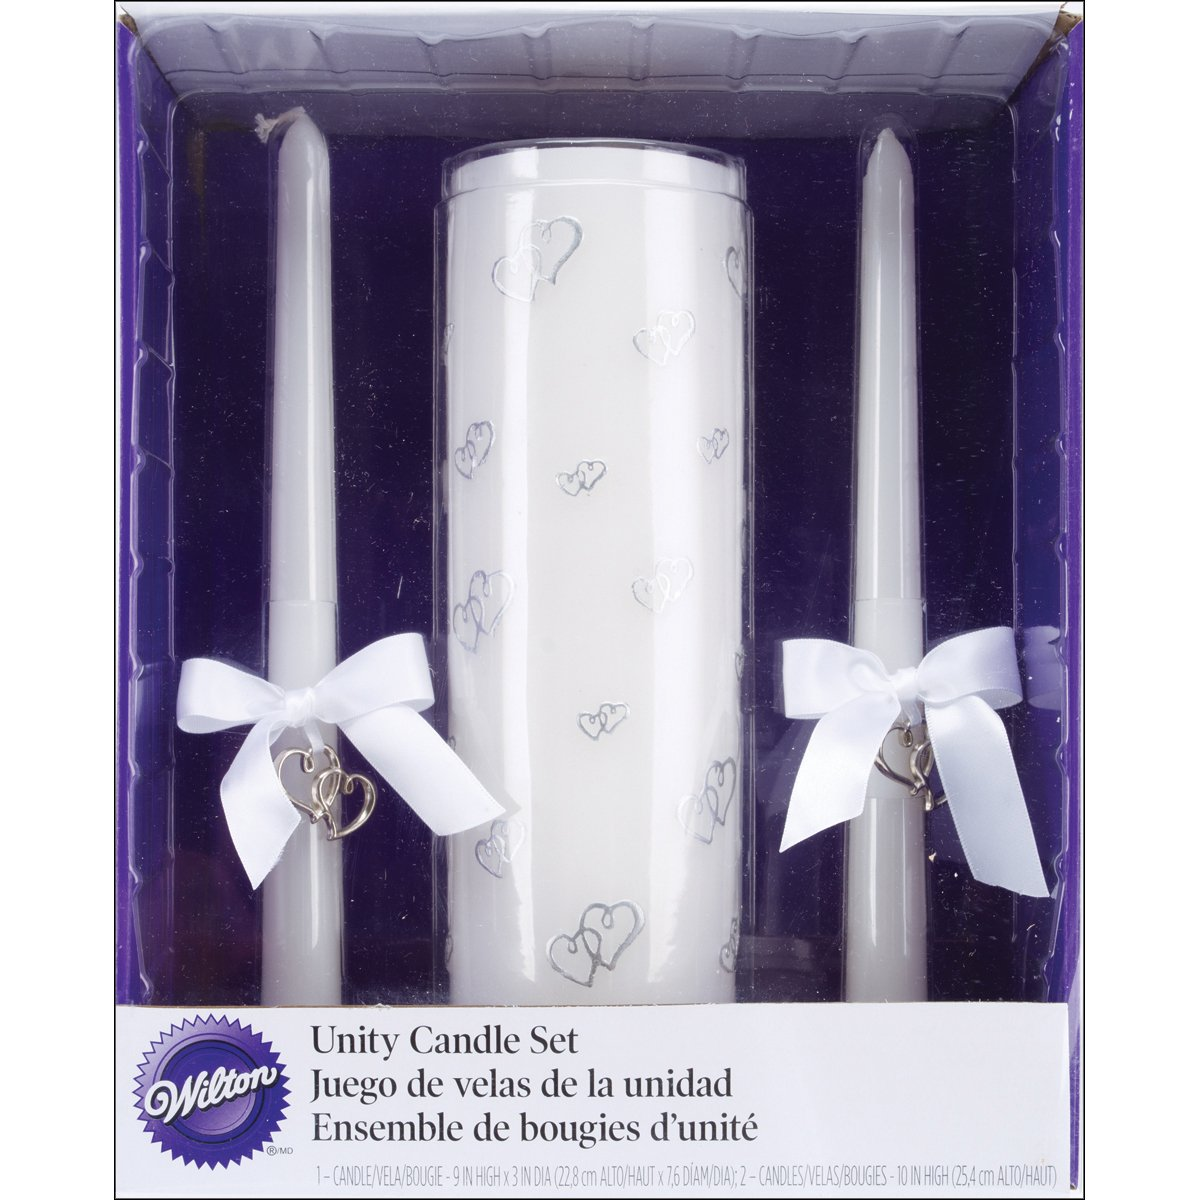 Wilton 120-464 Sweetheart Unity Candle Set